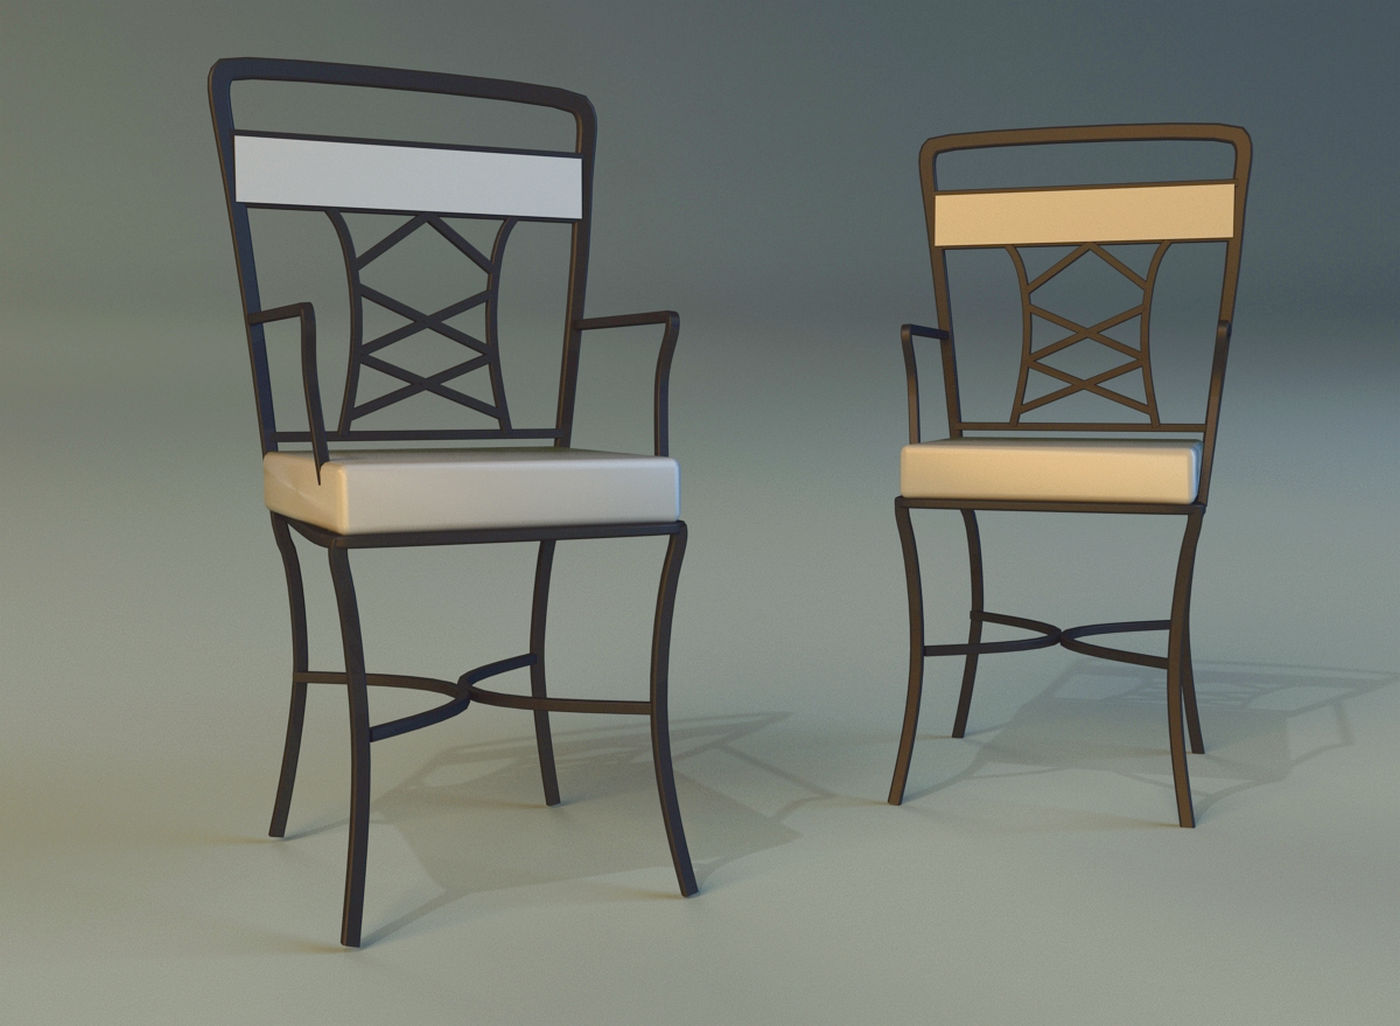 metal kitchen chair unfinished dining chairs 3d model max obj 3ds fbx mtl